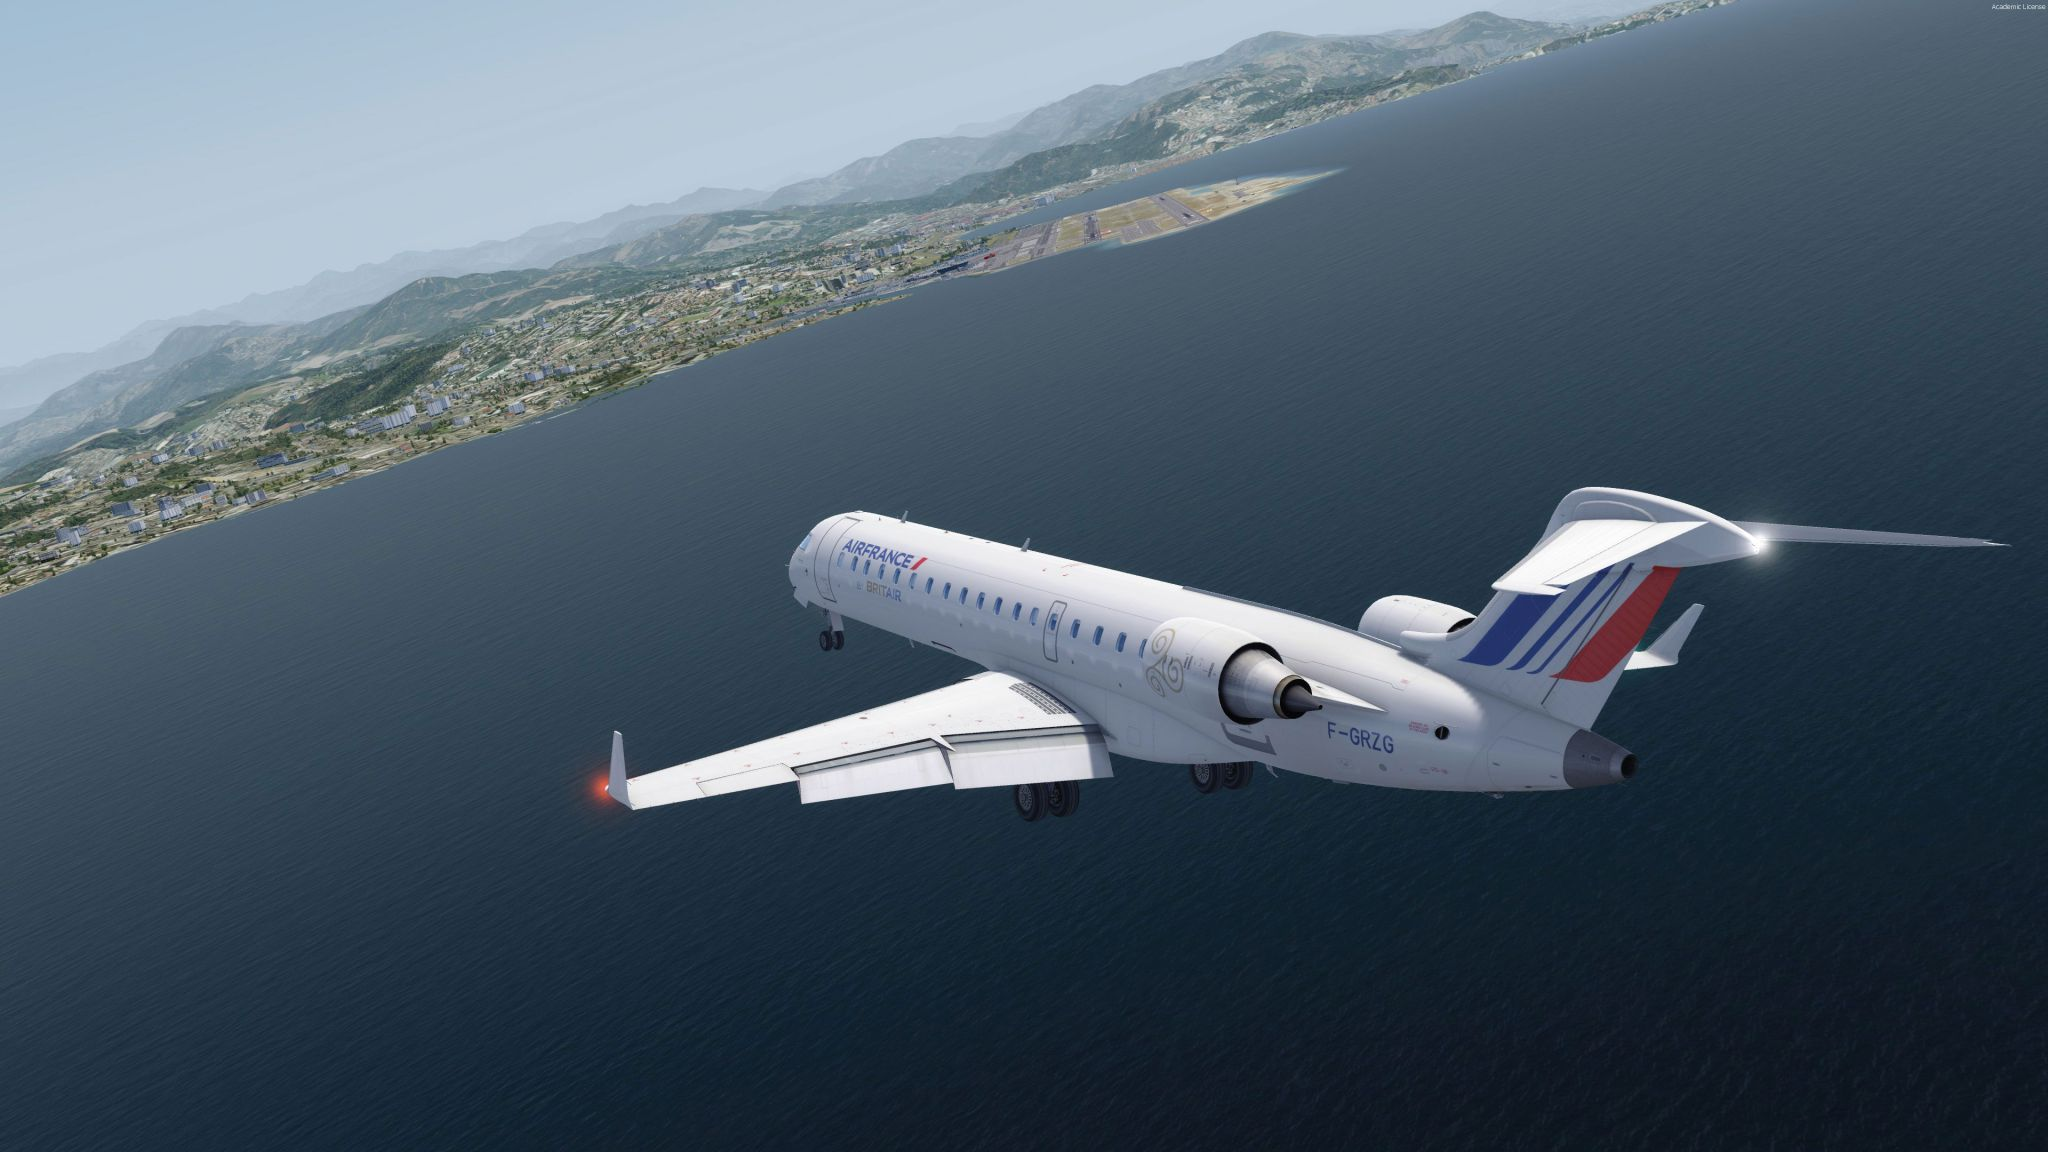 Aerosoft CRJ 700/900 X for FSX/P3D Review